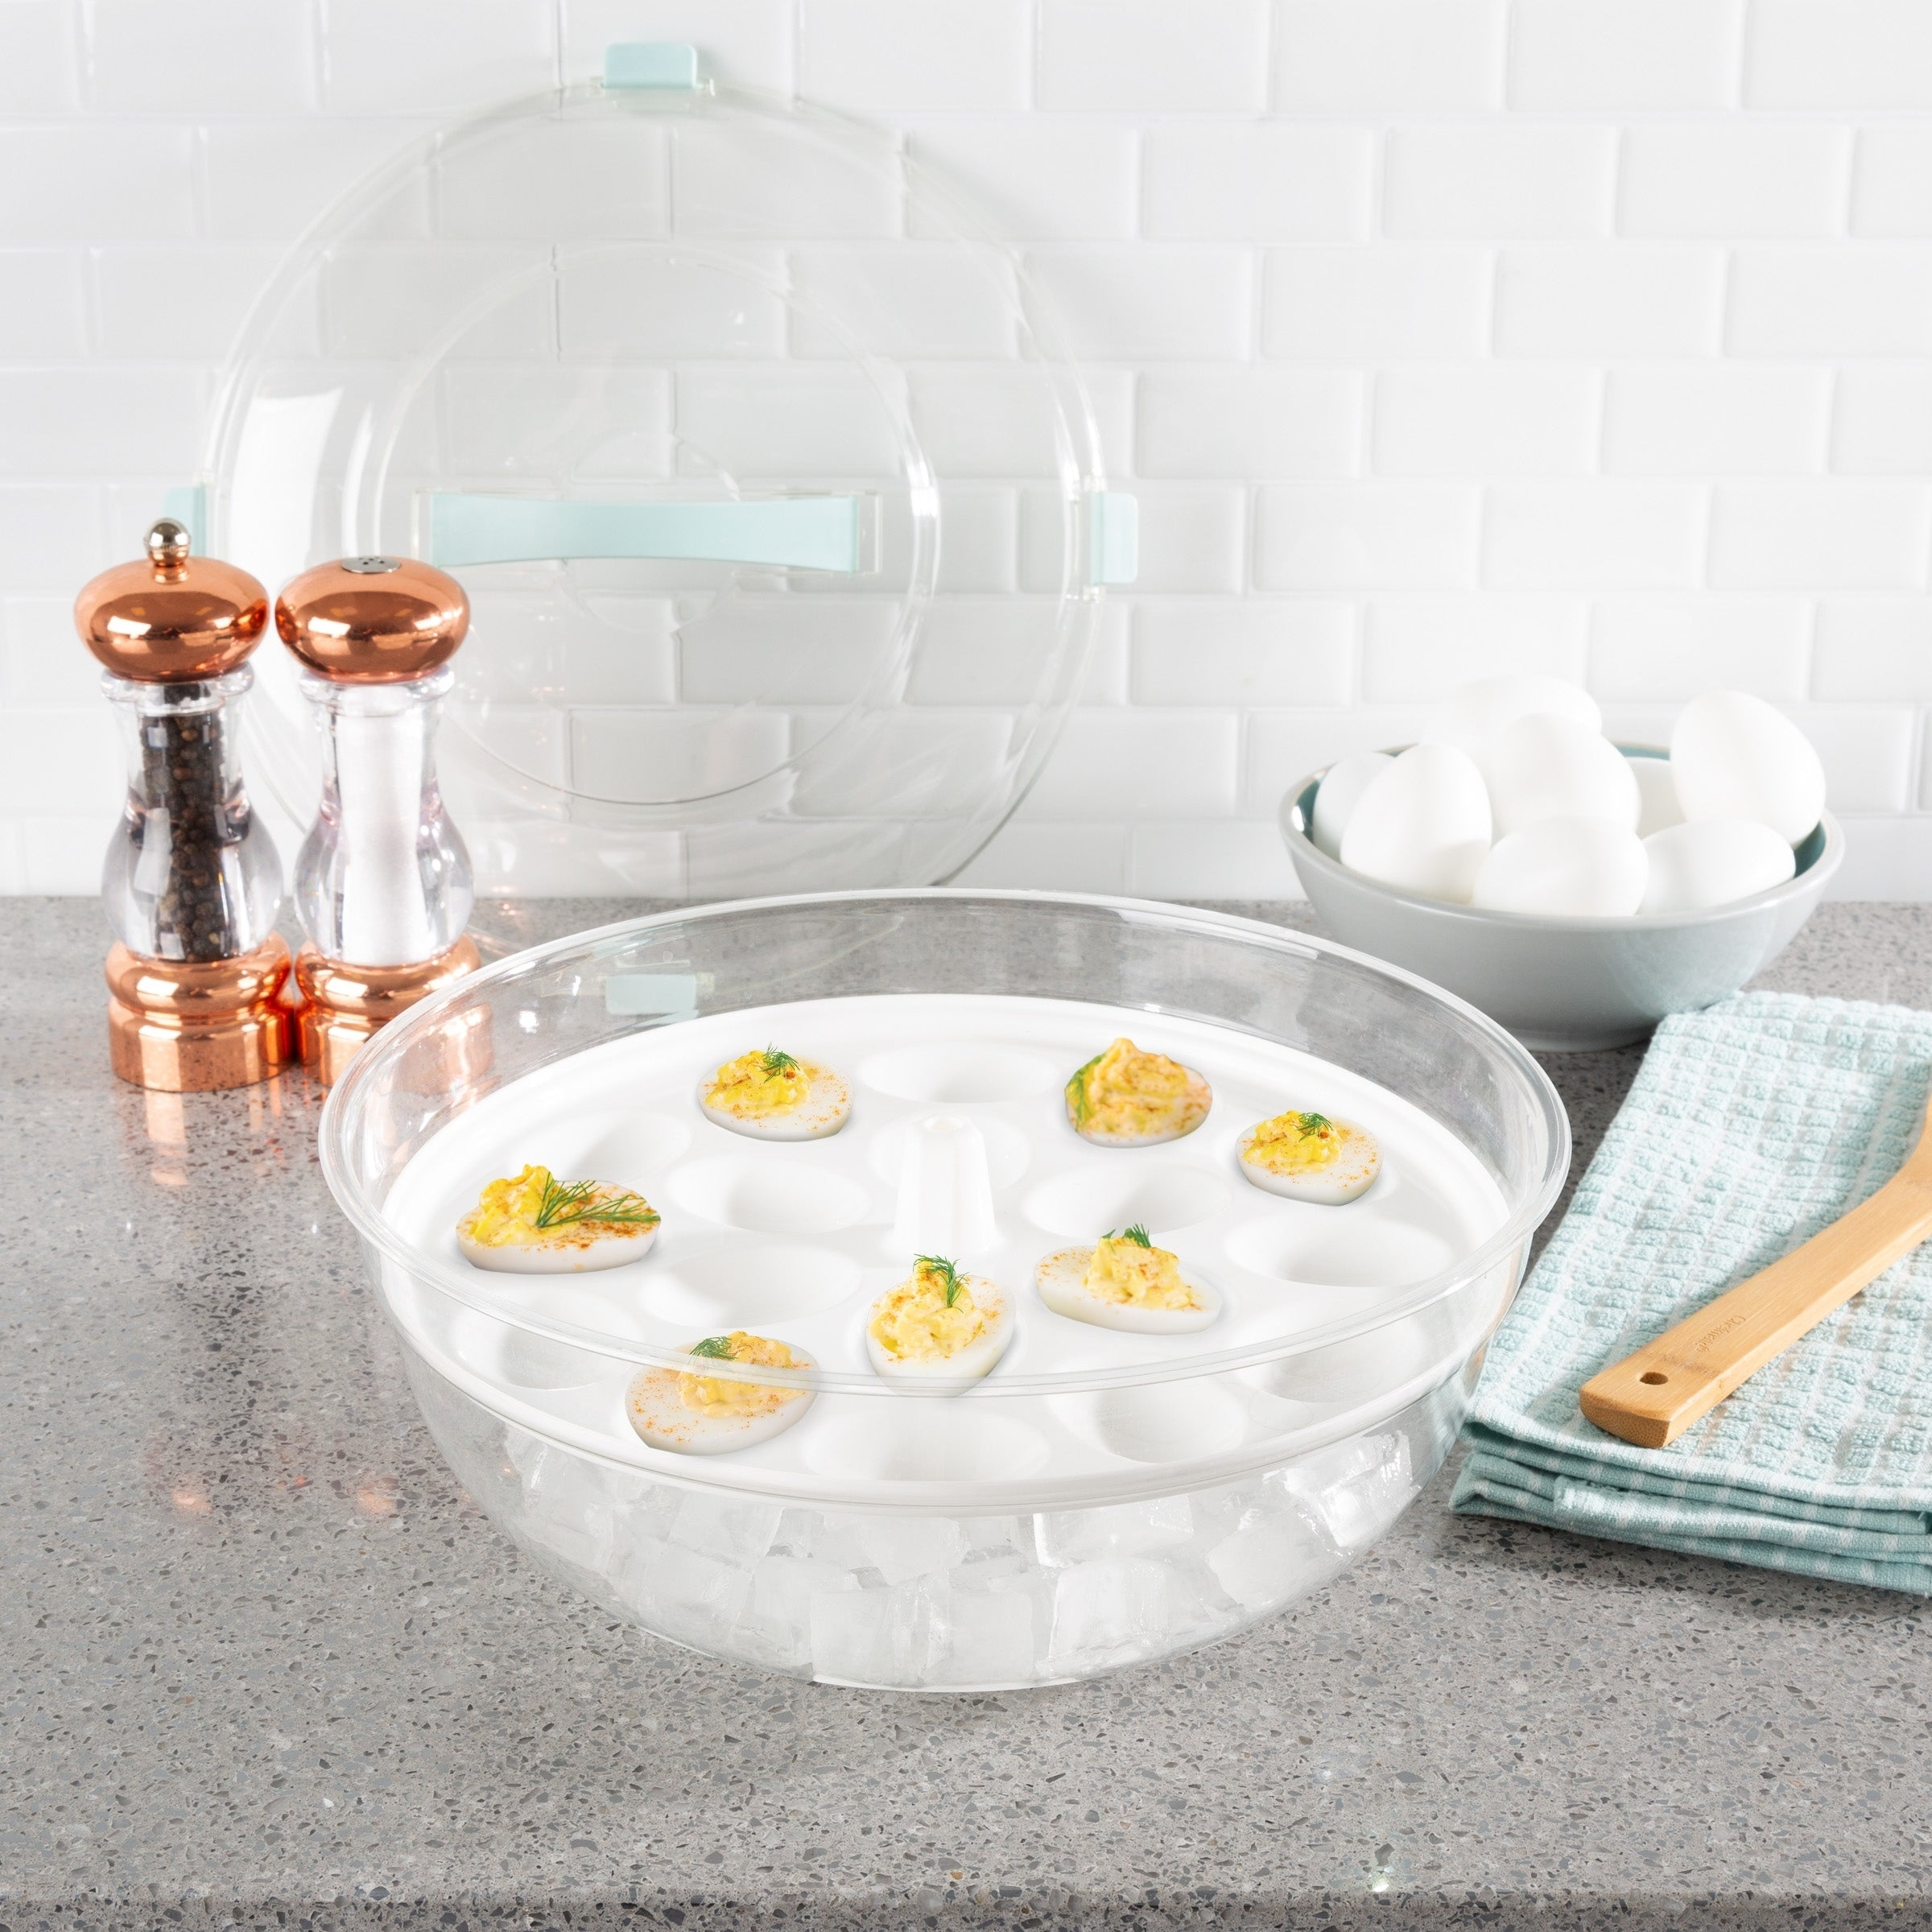 Cold Appetizer Tray 4 In 1 Platter With Ice Compartment Lid Bowl Deviled Egg 3 Section Carrier Dish By Classic Cuisine Overstock 25436739